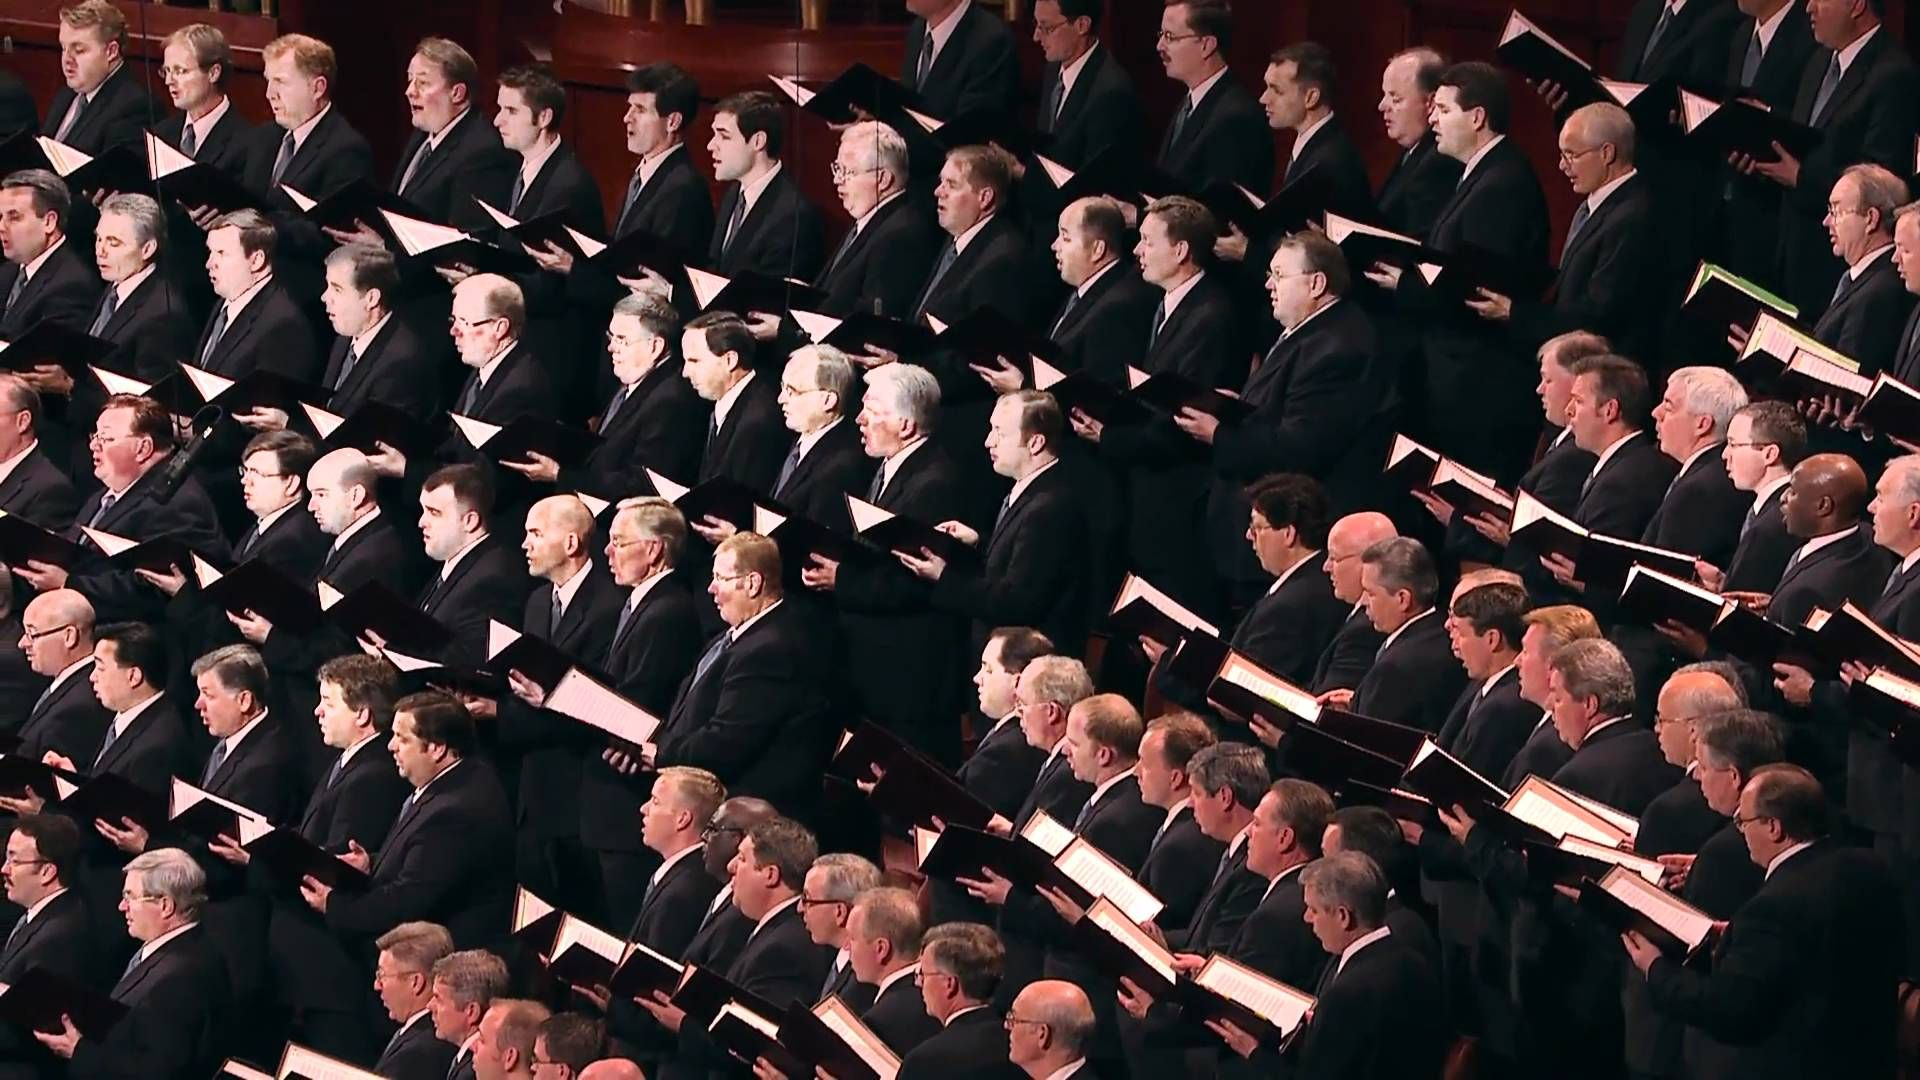 Mormon Tabernacle Choir More Holiness Give Me